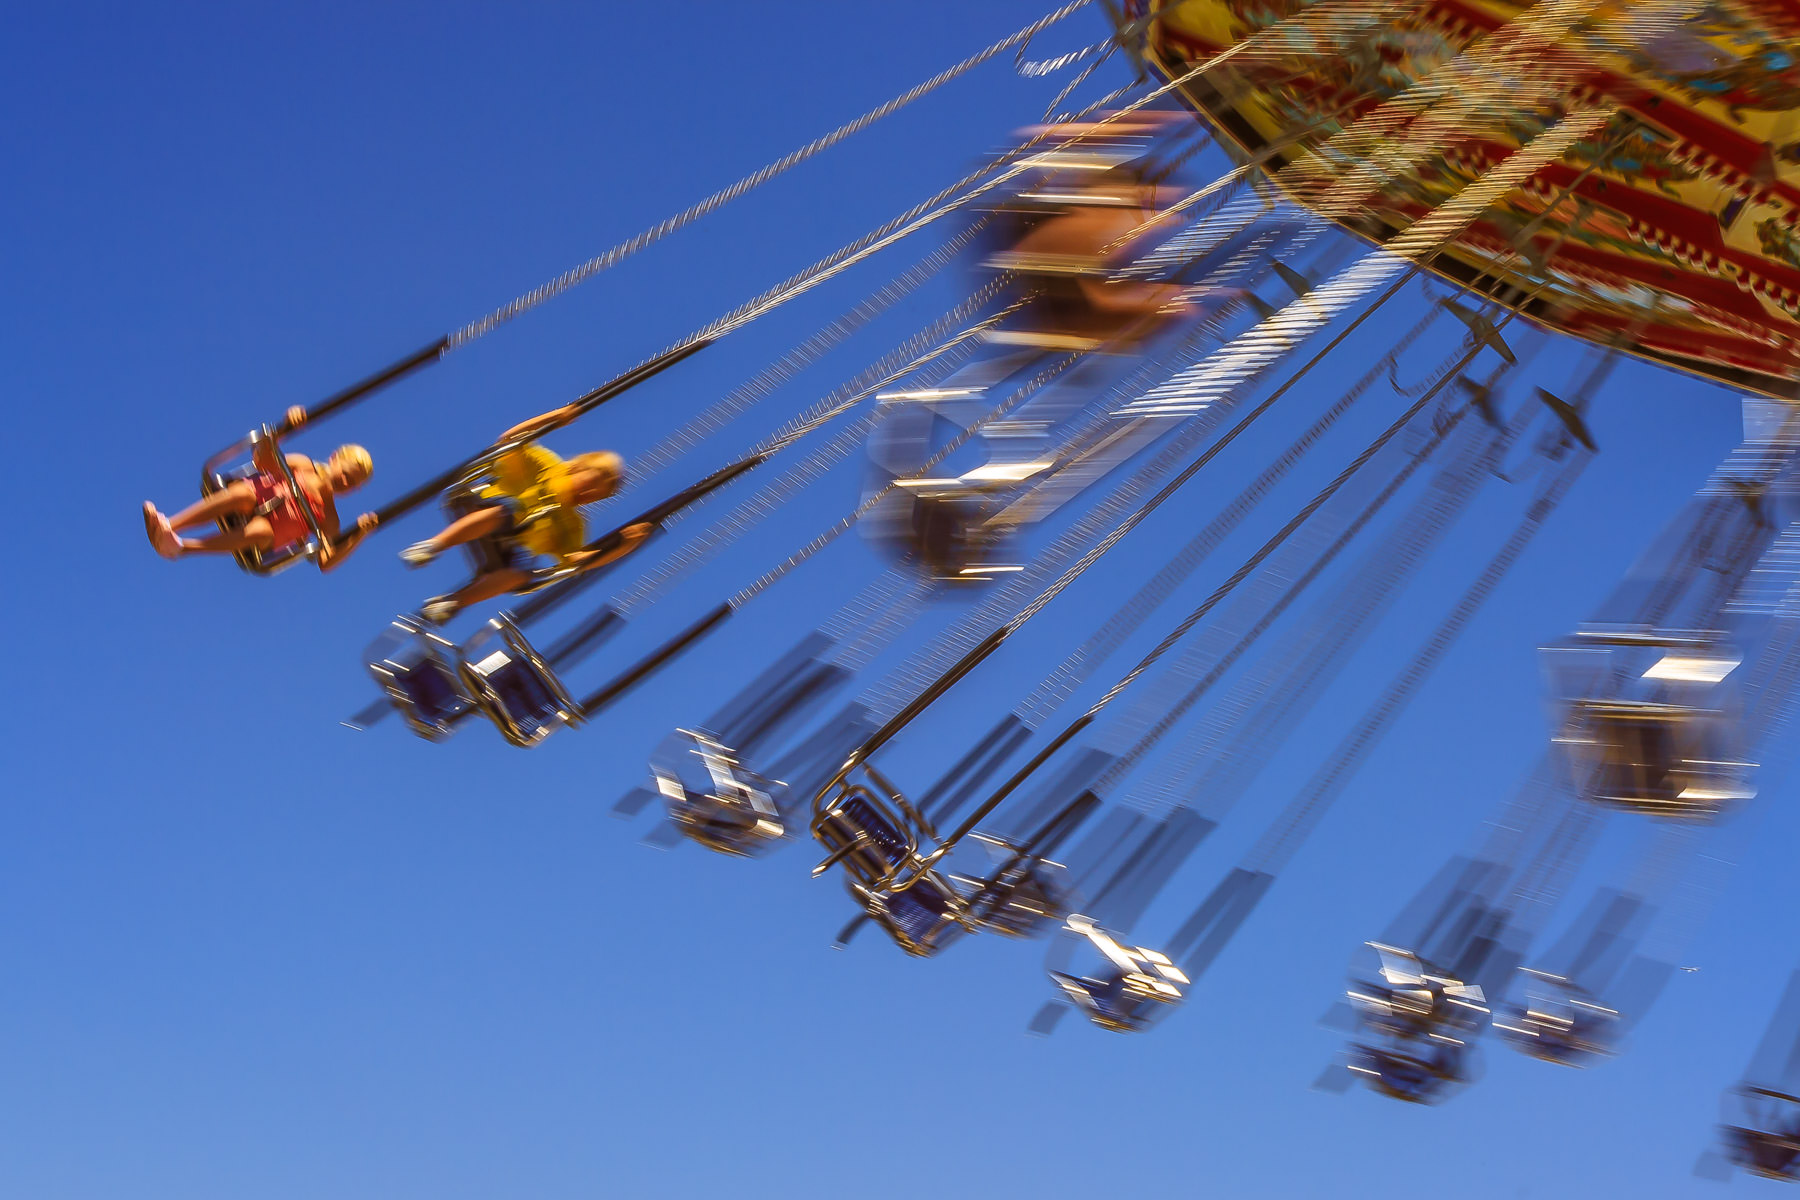 Swinging on a carnival ride in Grapevine, Texas' Main Street Days.